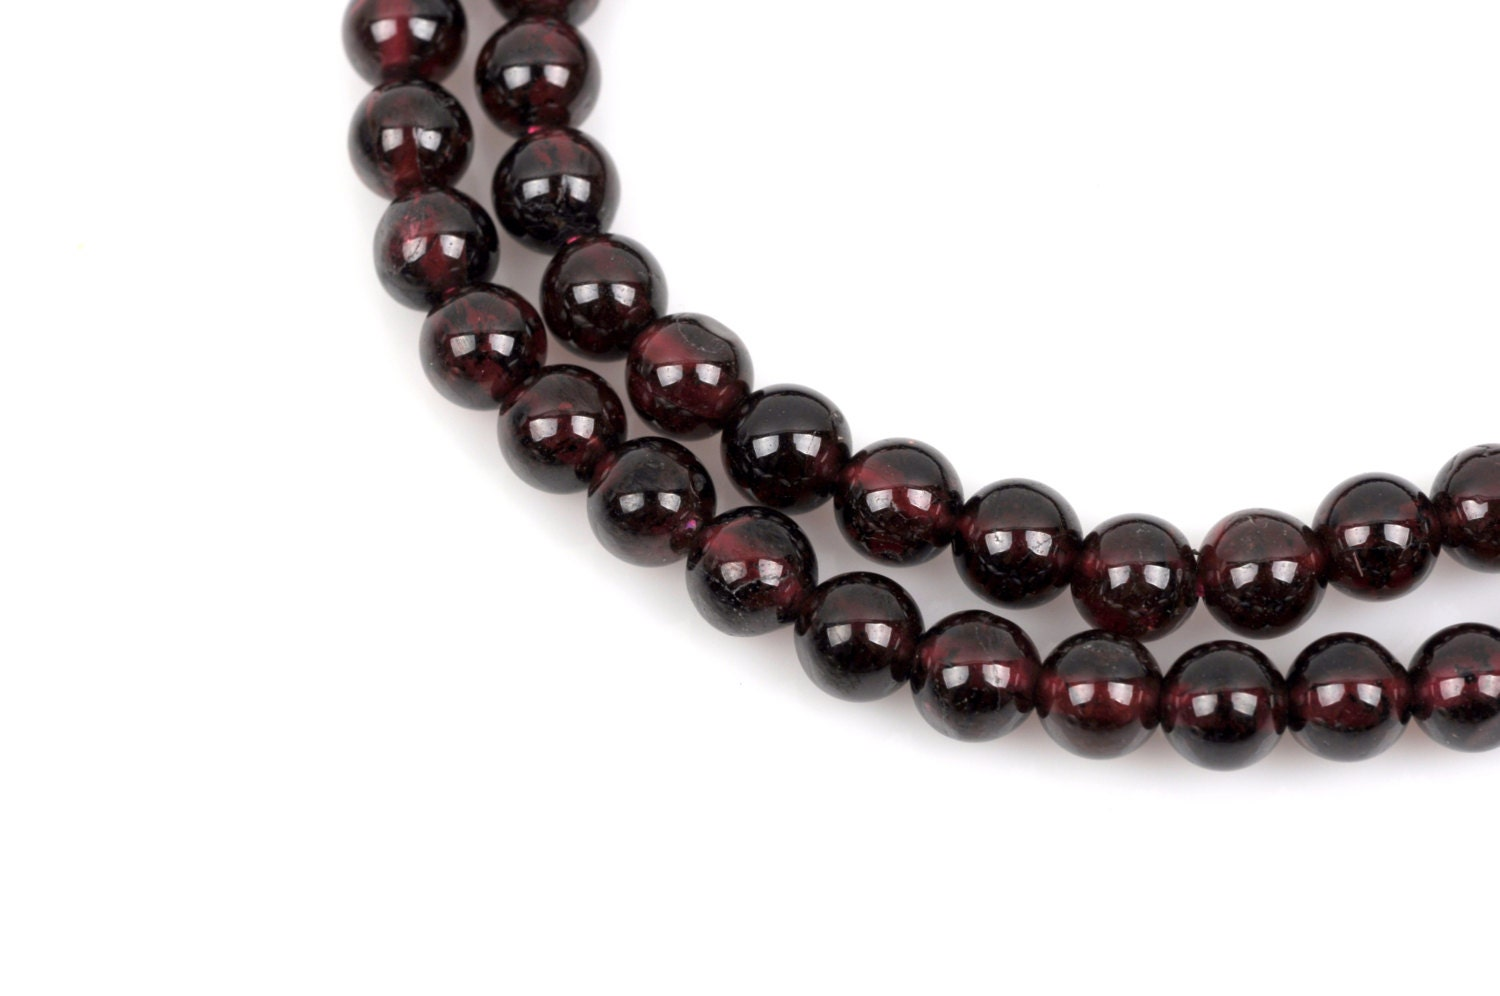 4mm Dark Red GARNET Round Gemstone Beads full strand gga0002